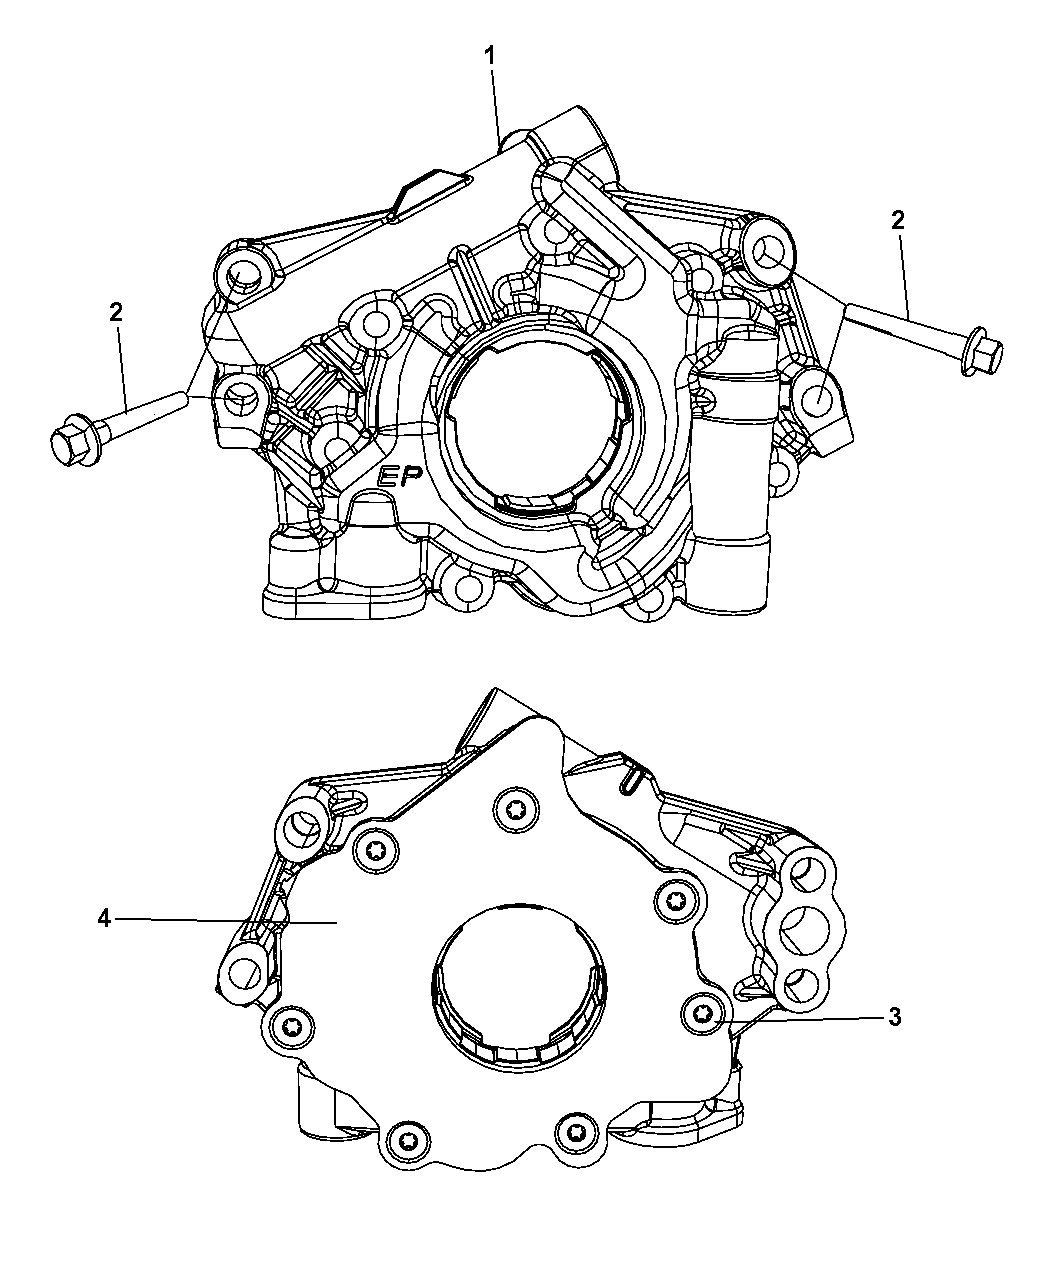 2011 jeep grand cherokee engine oil pump - thumbnail 1